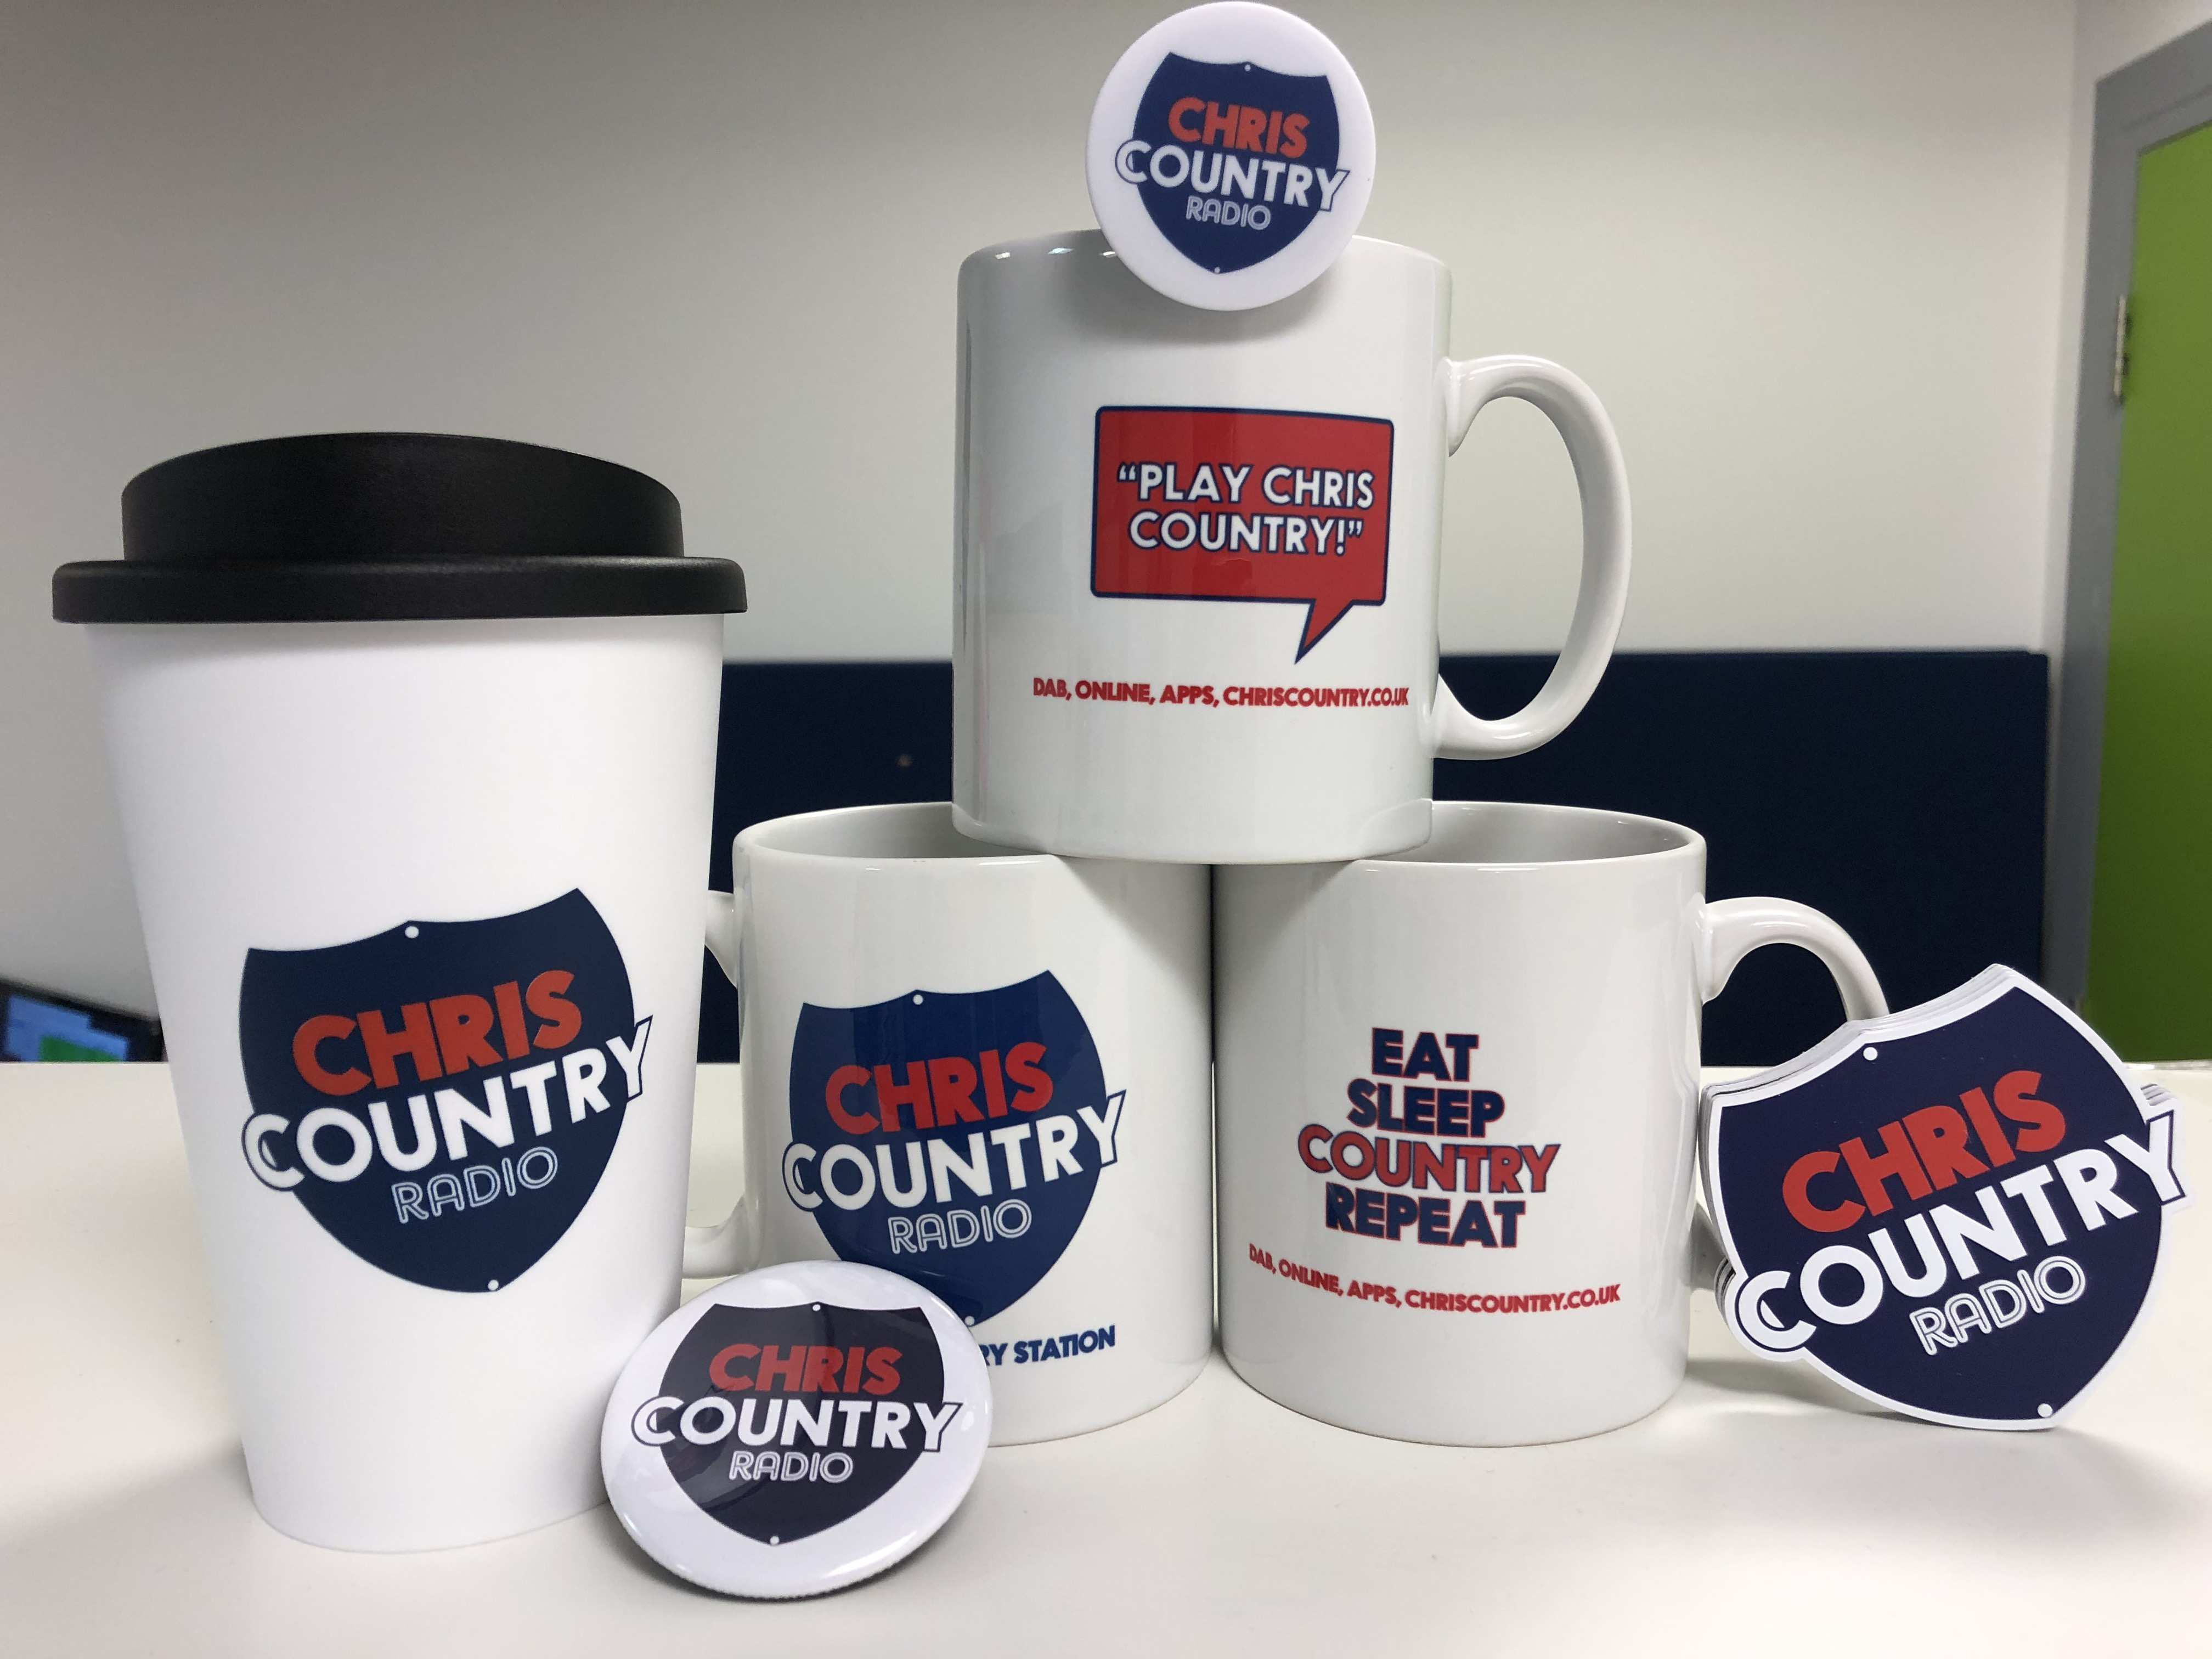 Chris Country Radio - The UK's Country Station